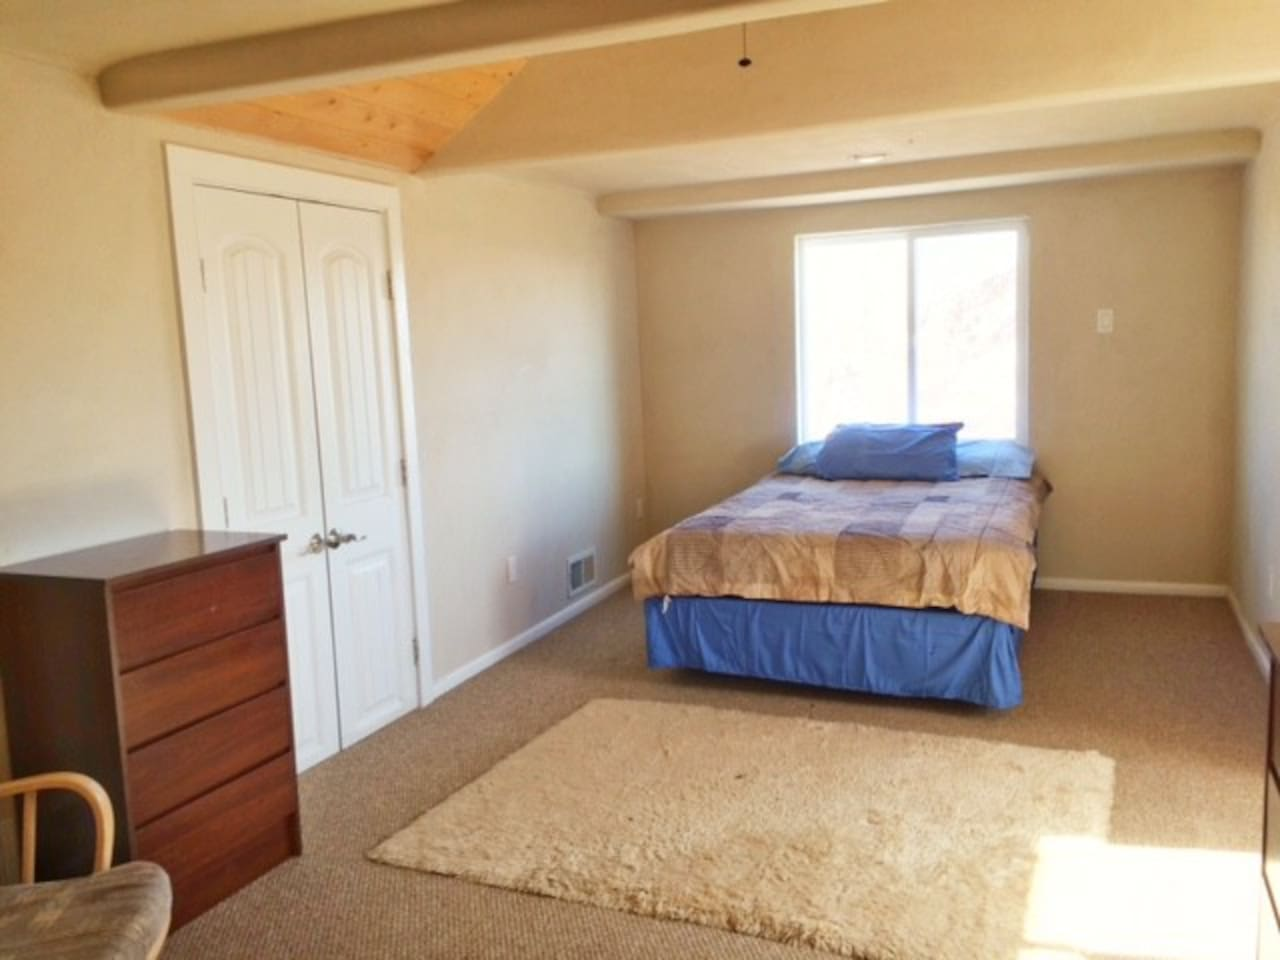 Full Bed in Shared Area Upstairs